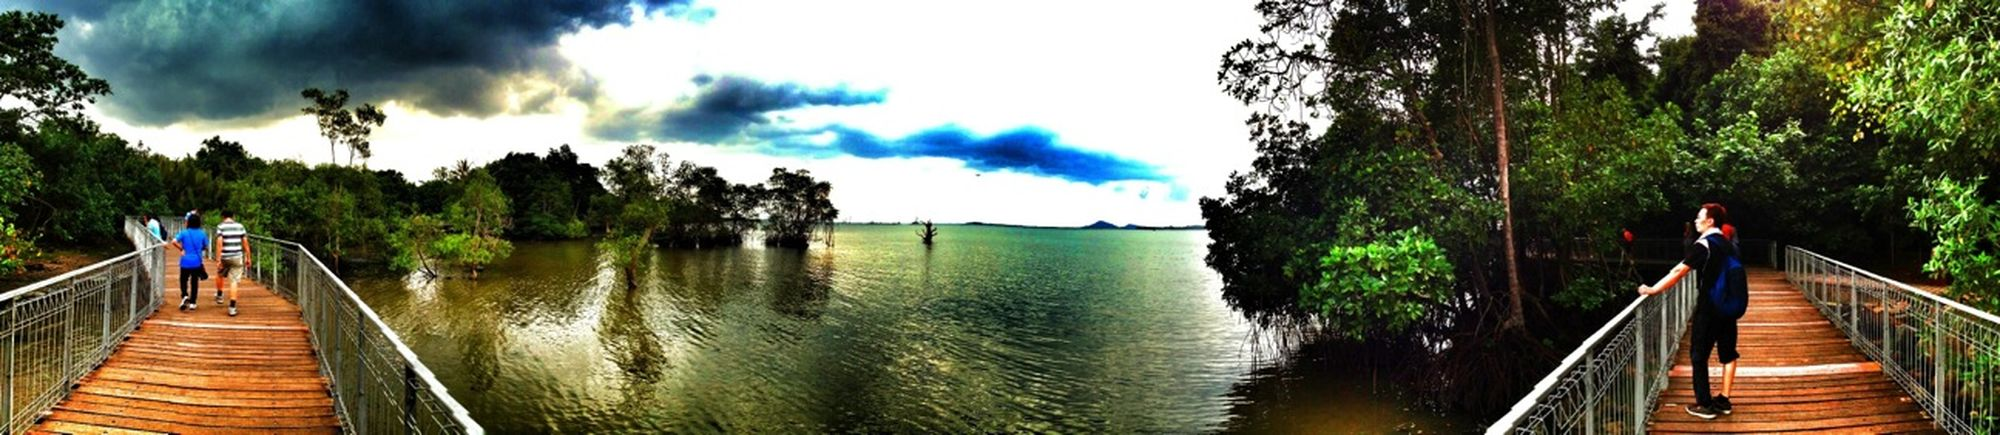 Panorama view of the mangroves of Chek Jawa at Ubin Island, Singapore before rain. The people at right hand side is my hubby.